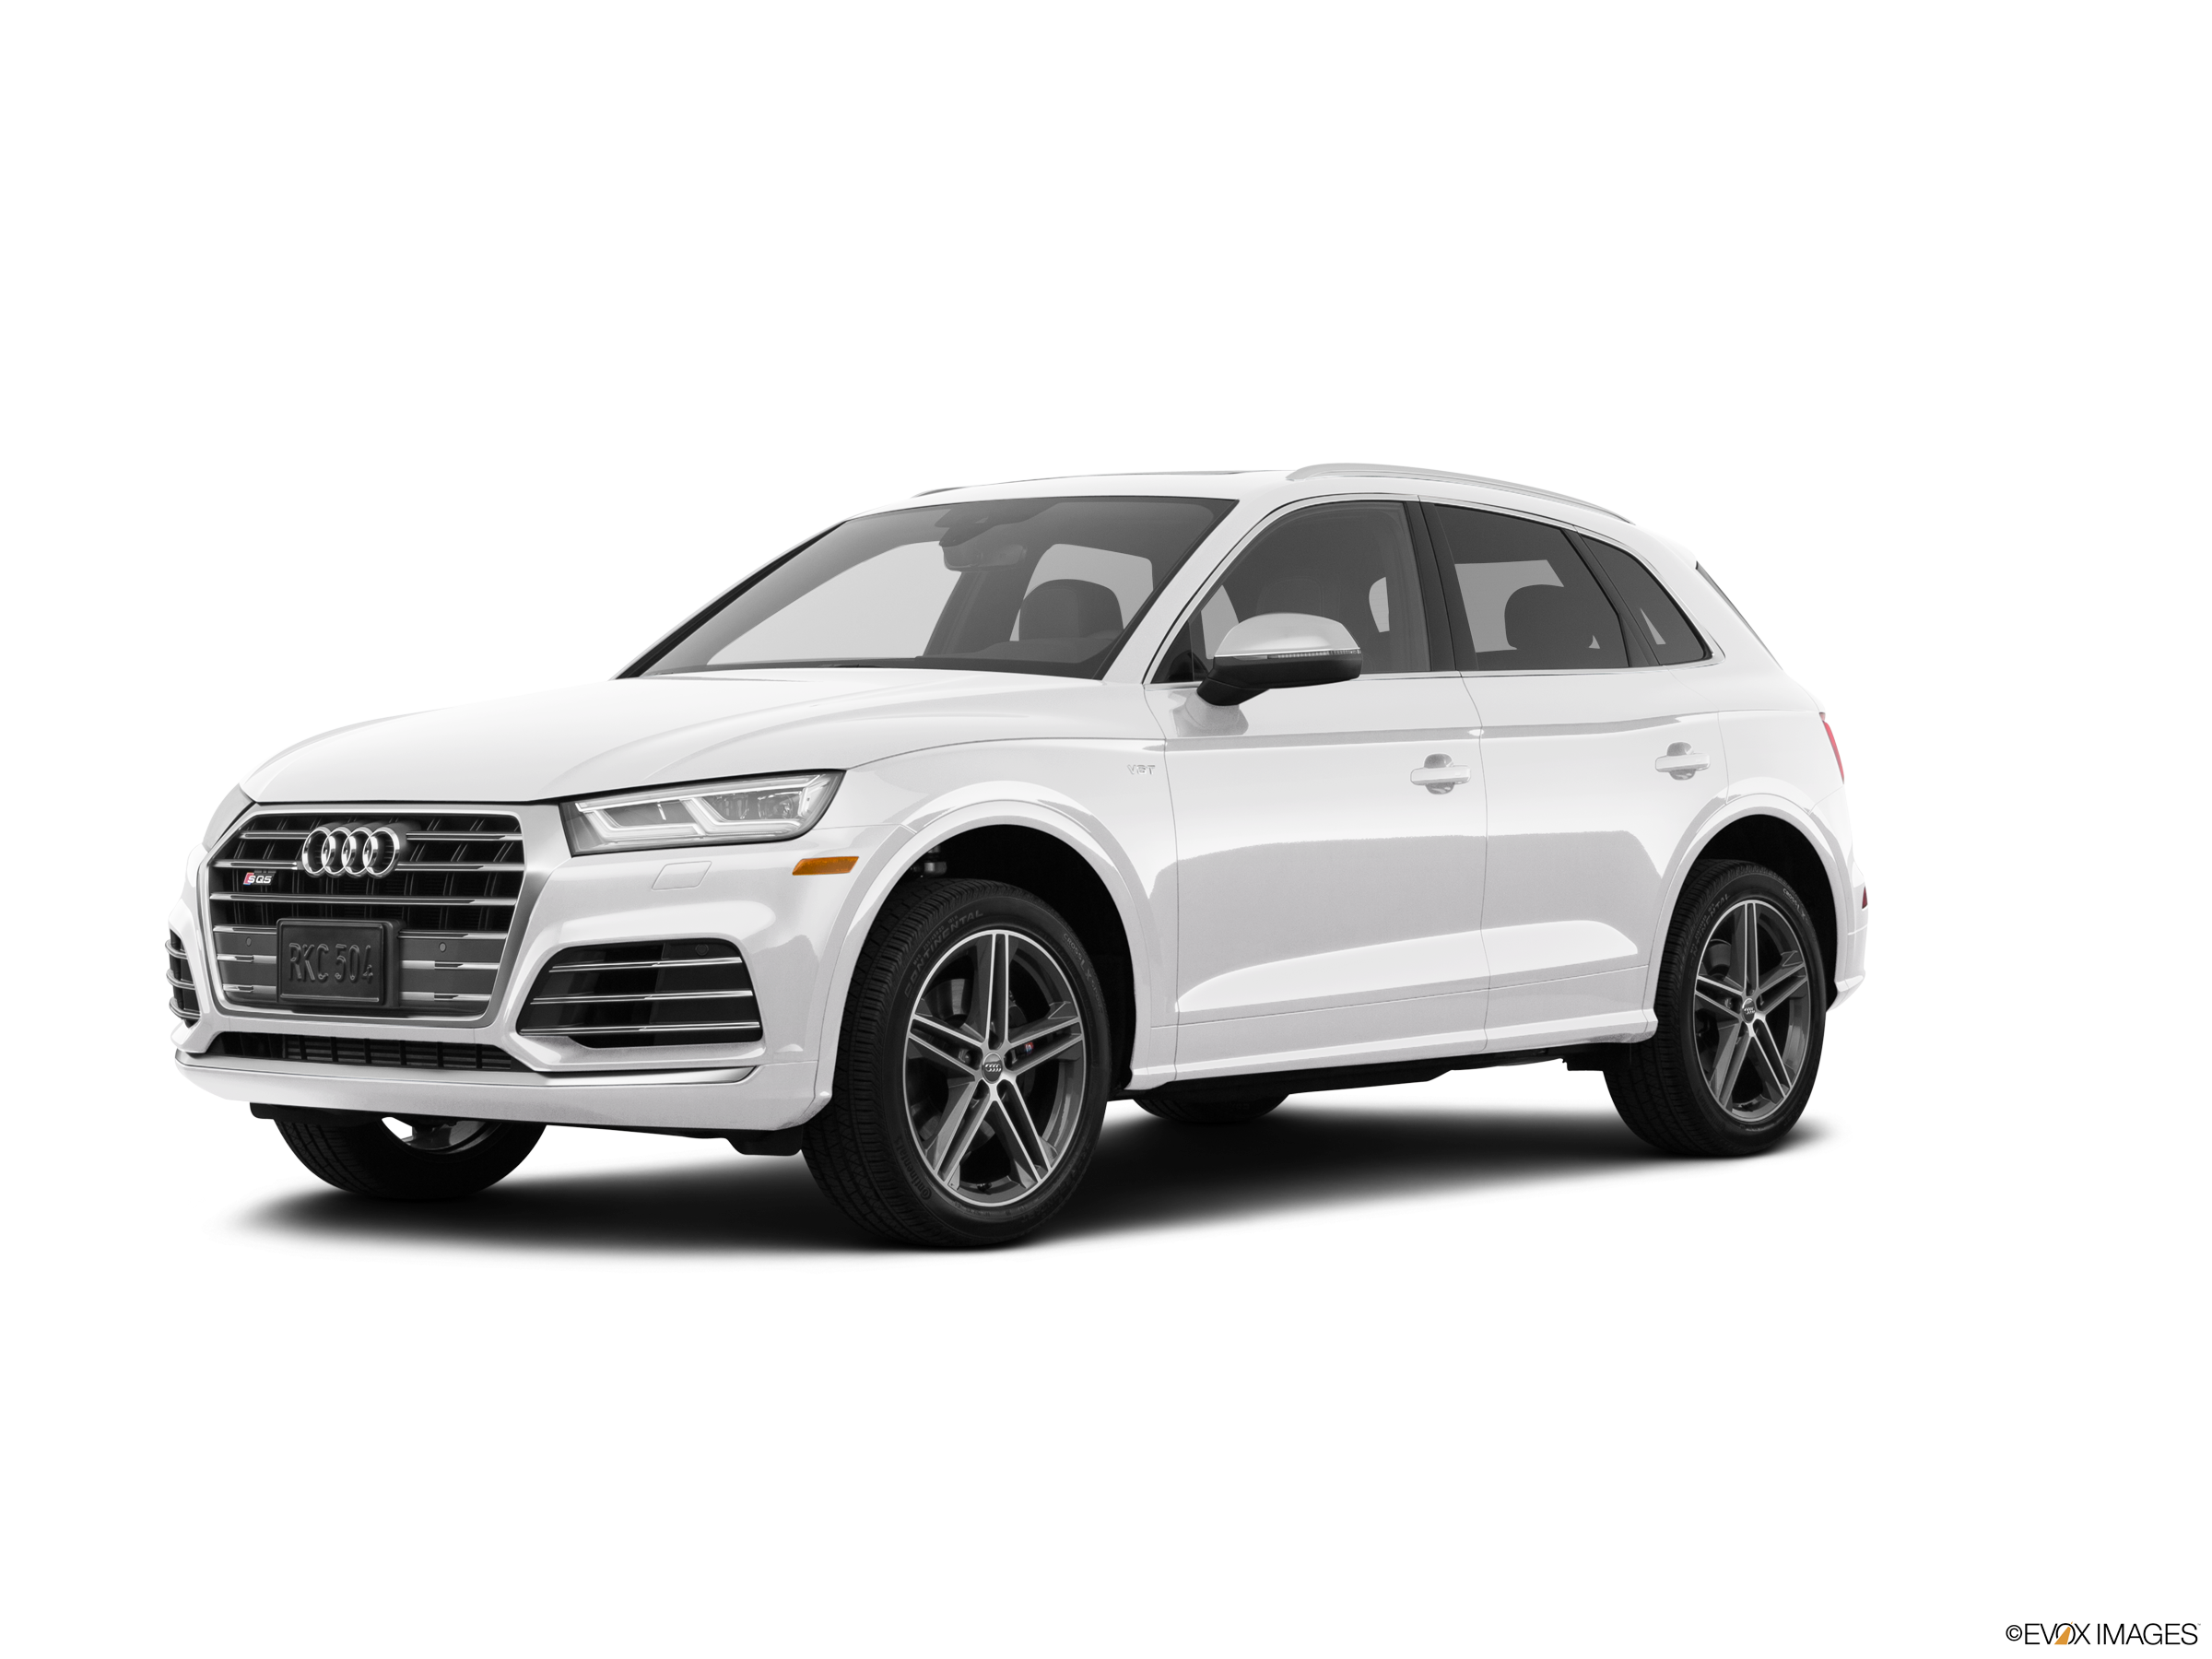 Top Expert Rated Luxury Vehicles of 2018 - 2018 Audi SQ5